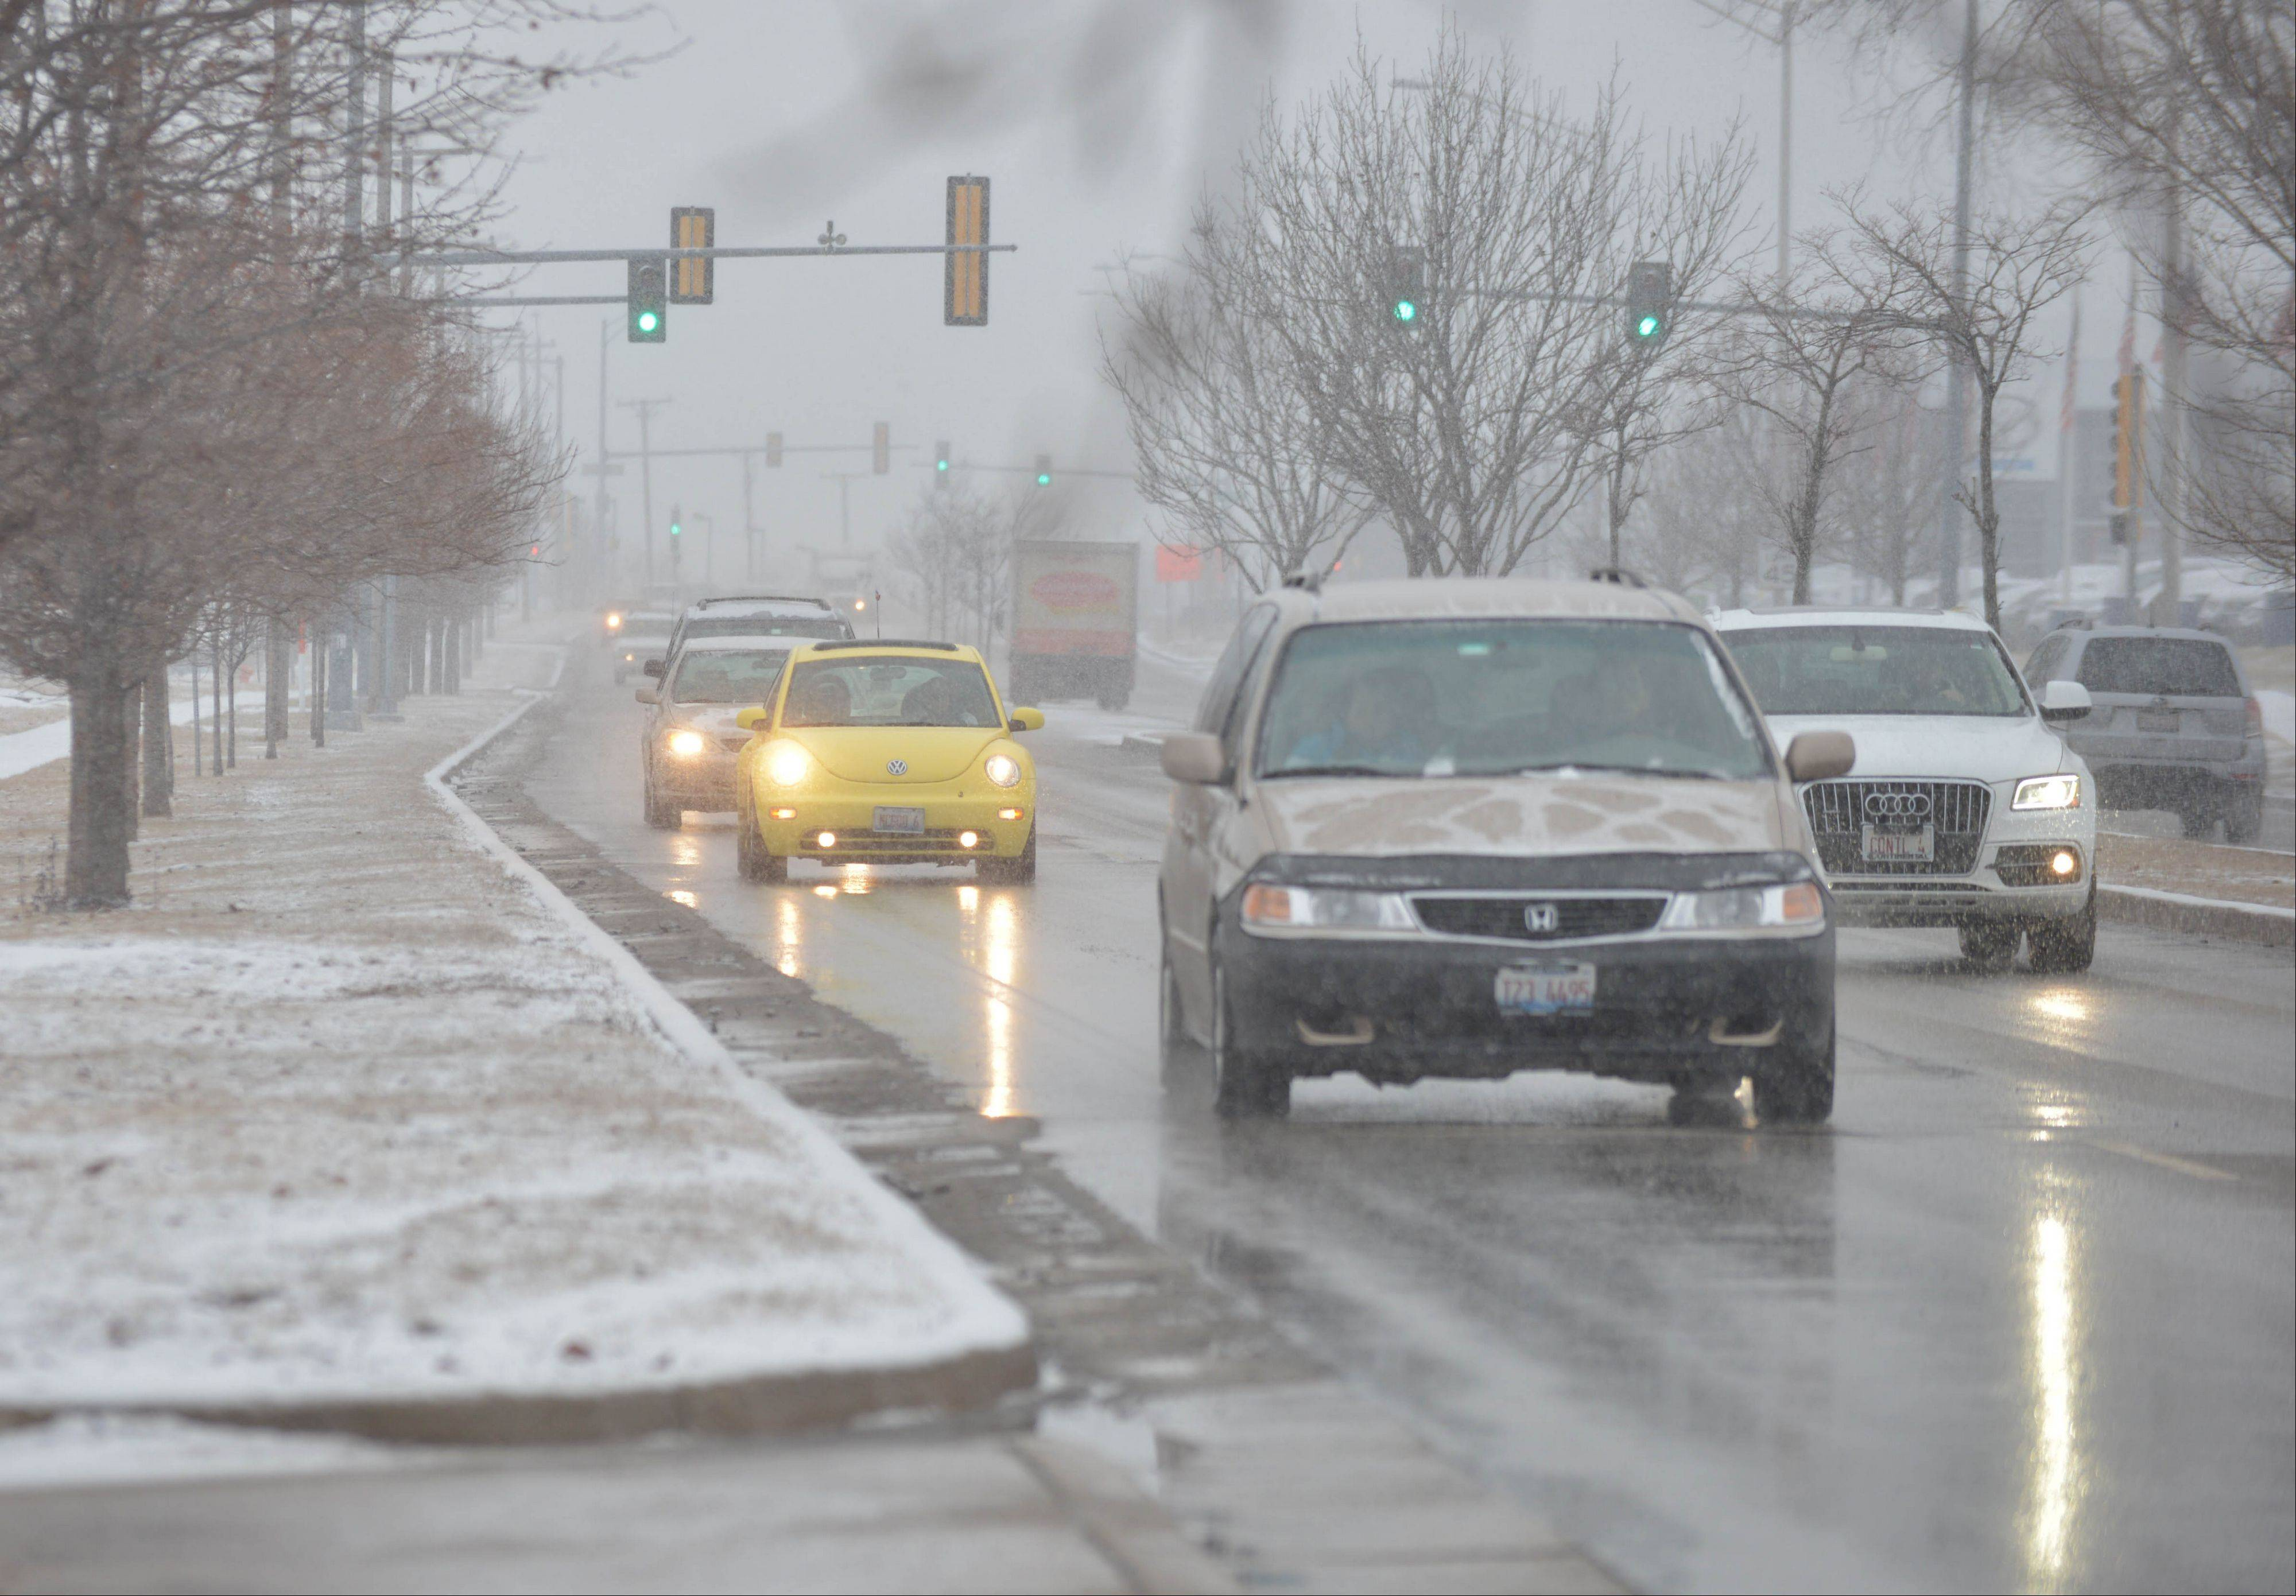 Vehicles proceed with caution along Aurora Avenue in Naperville late Tuesday afternoon. Our area is expected to receive between 3 and 6 inches of snow by Wednesday evening.